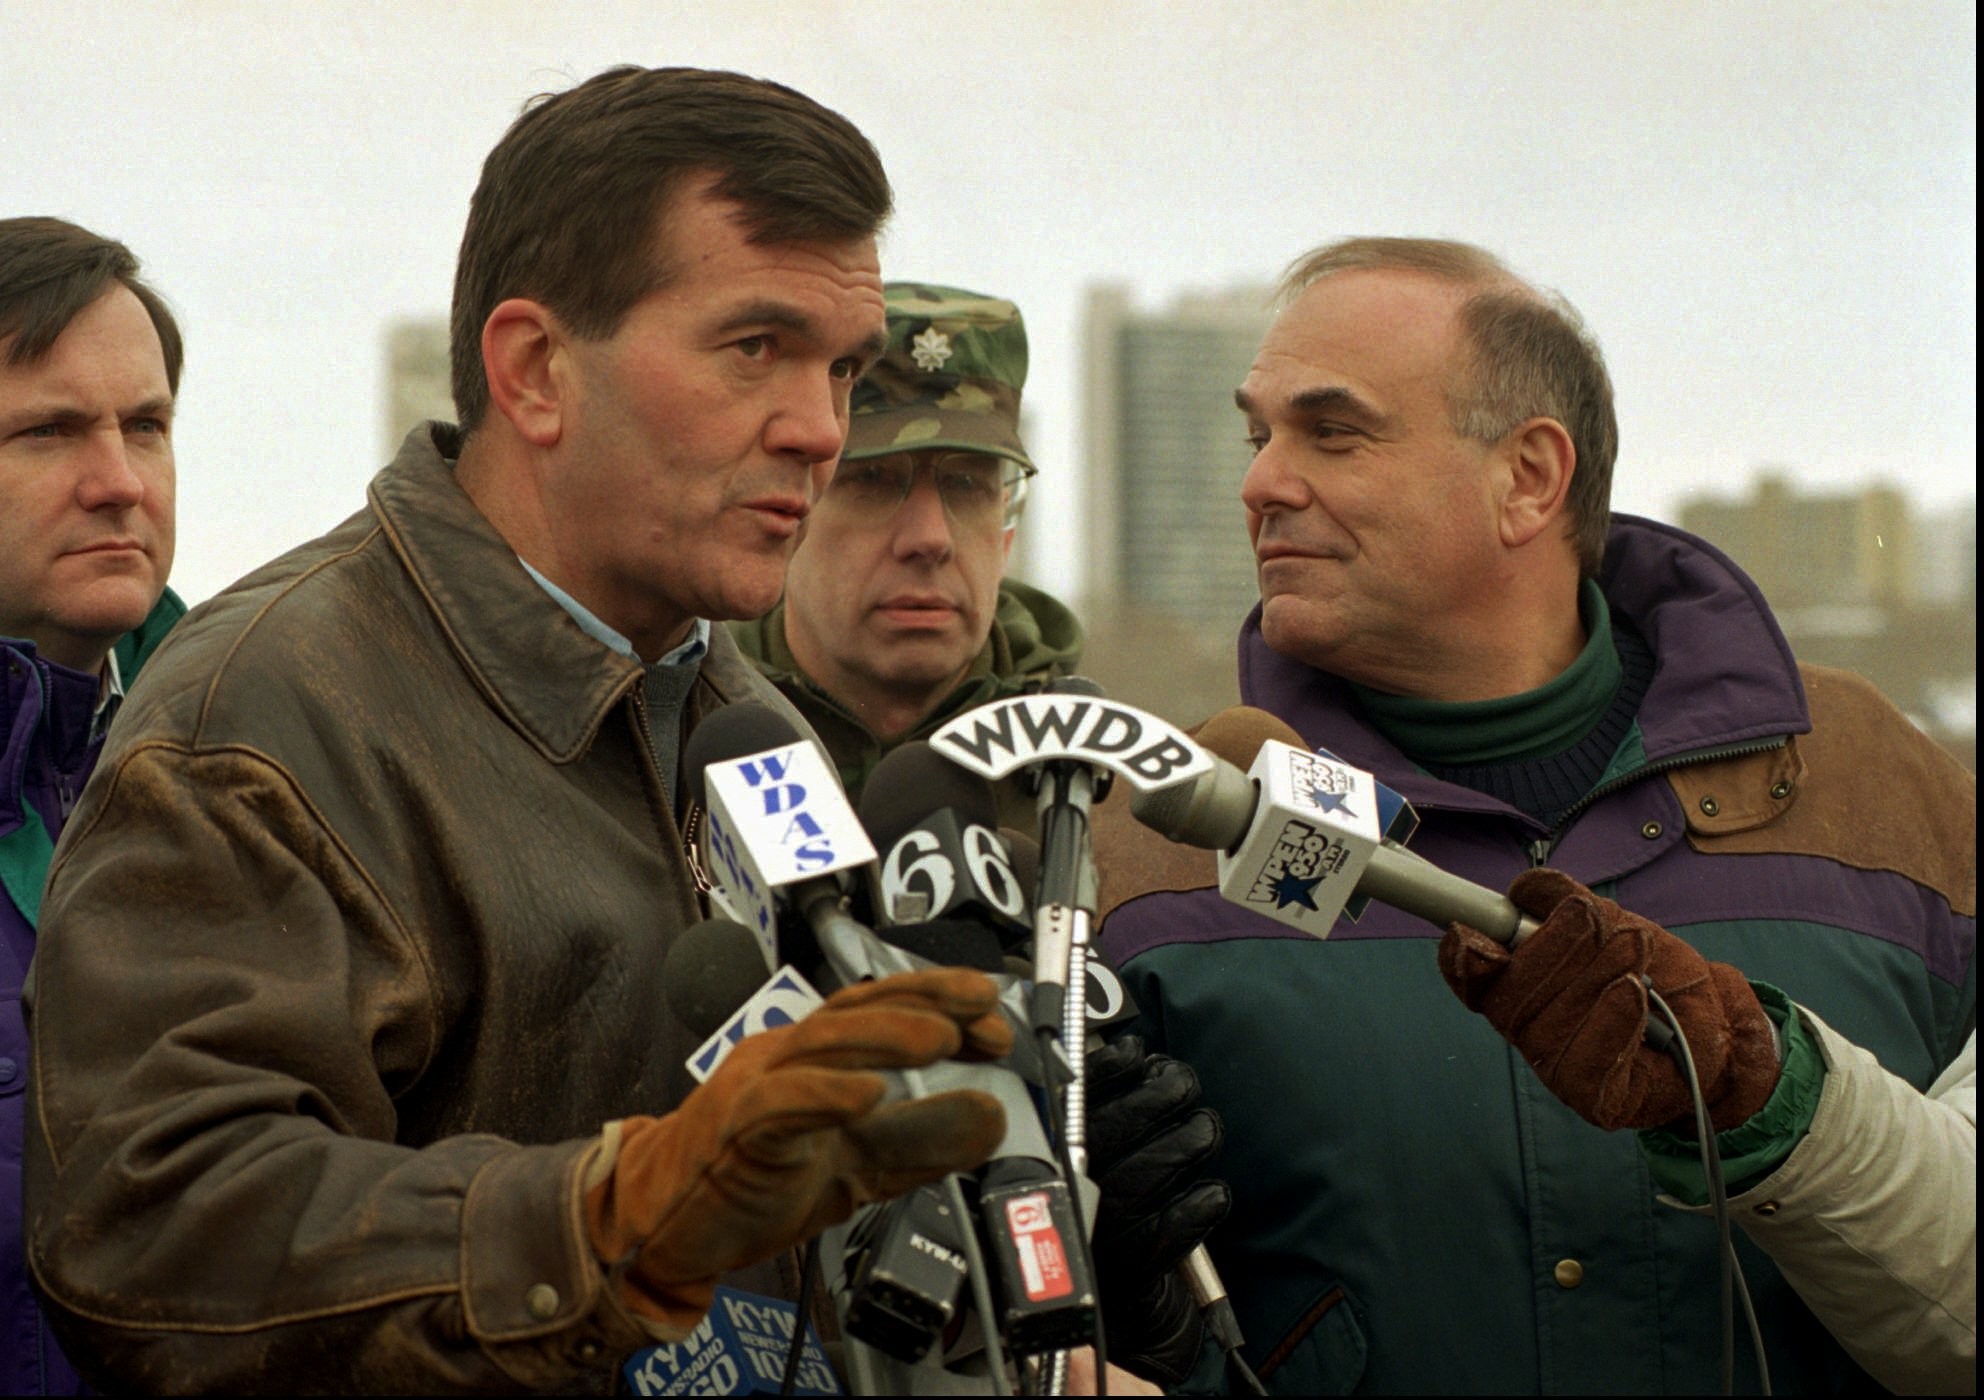 "<div class=""meta image-caption""><div class=""origin-logo origin-image ap""><span>AP</span></div><span class=""caption-text"">Pennsylvania Governor Tom Ridge and Philadelphia Mayor Ed Rendell during a 1996 snow storm. (ASSOCIATED PRESS)</span></div>"